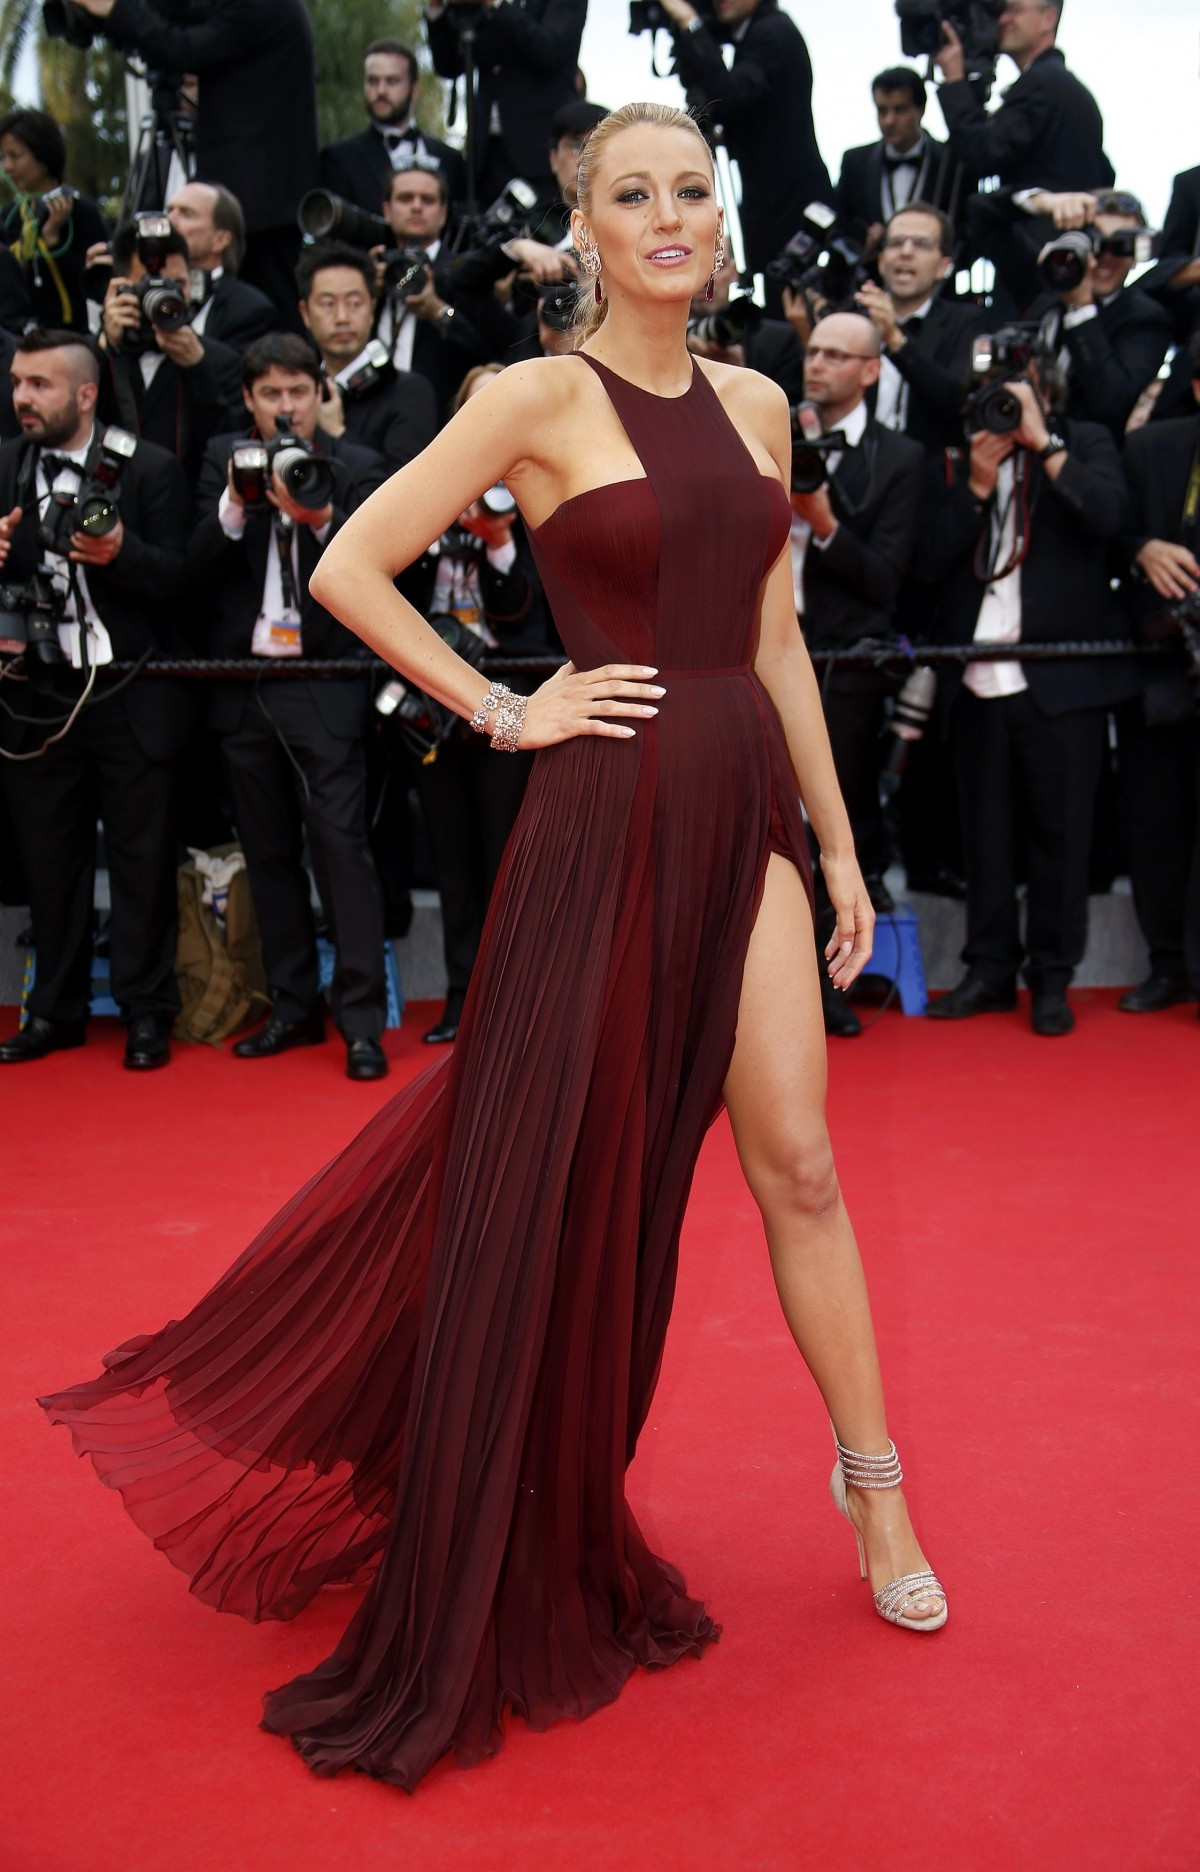 Actress Blake Lively poses on the red carpet as she arrives for the opening ceremony of the 67th Cannes Film Festival in Cannes